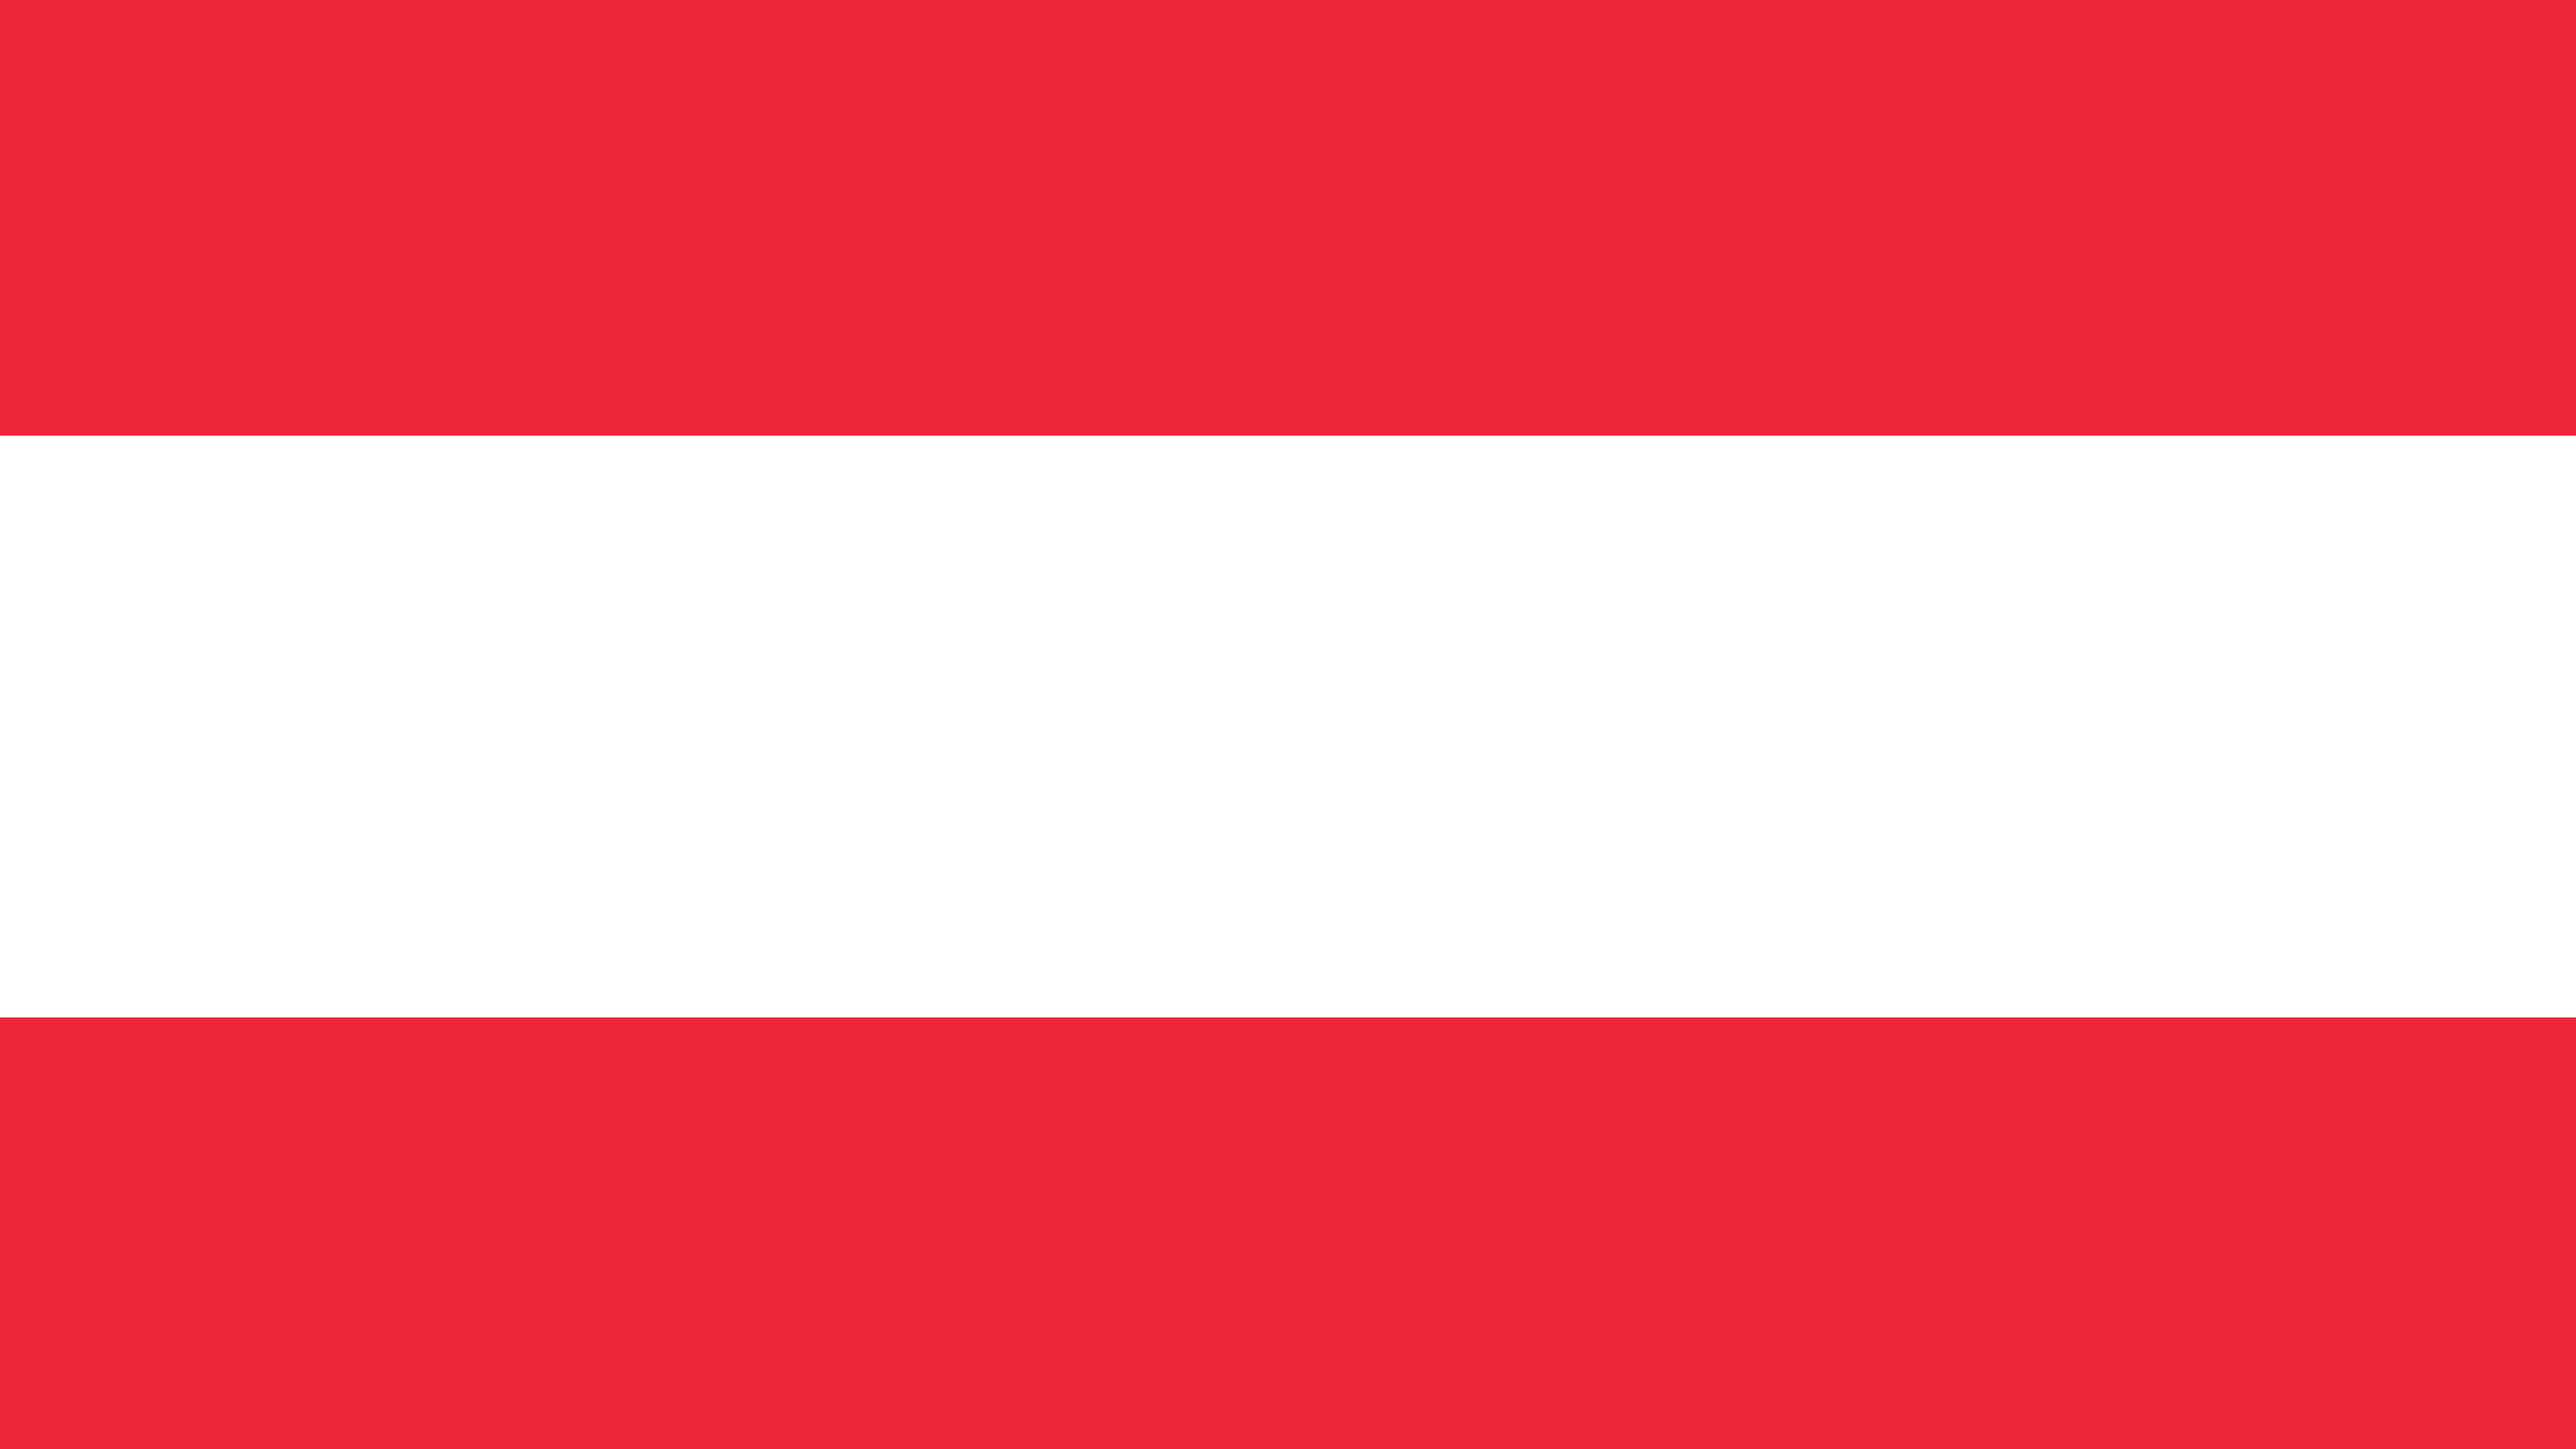 austria flag uhd 4k wallpaper